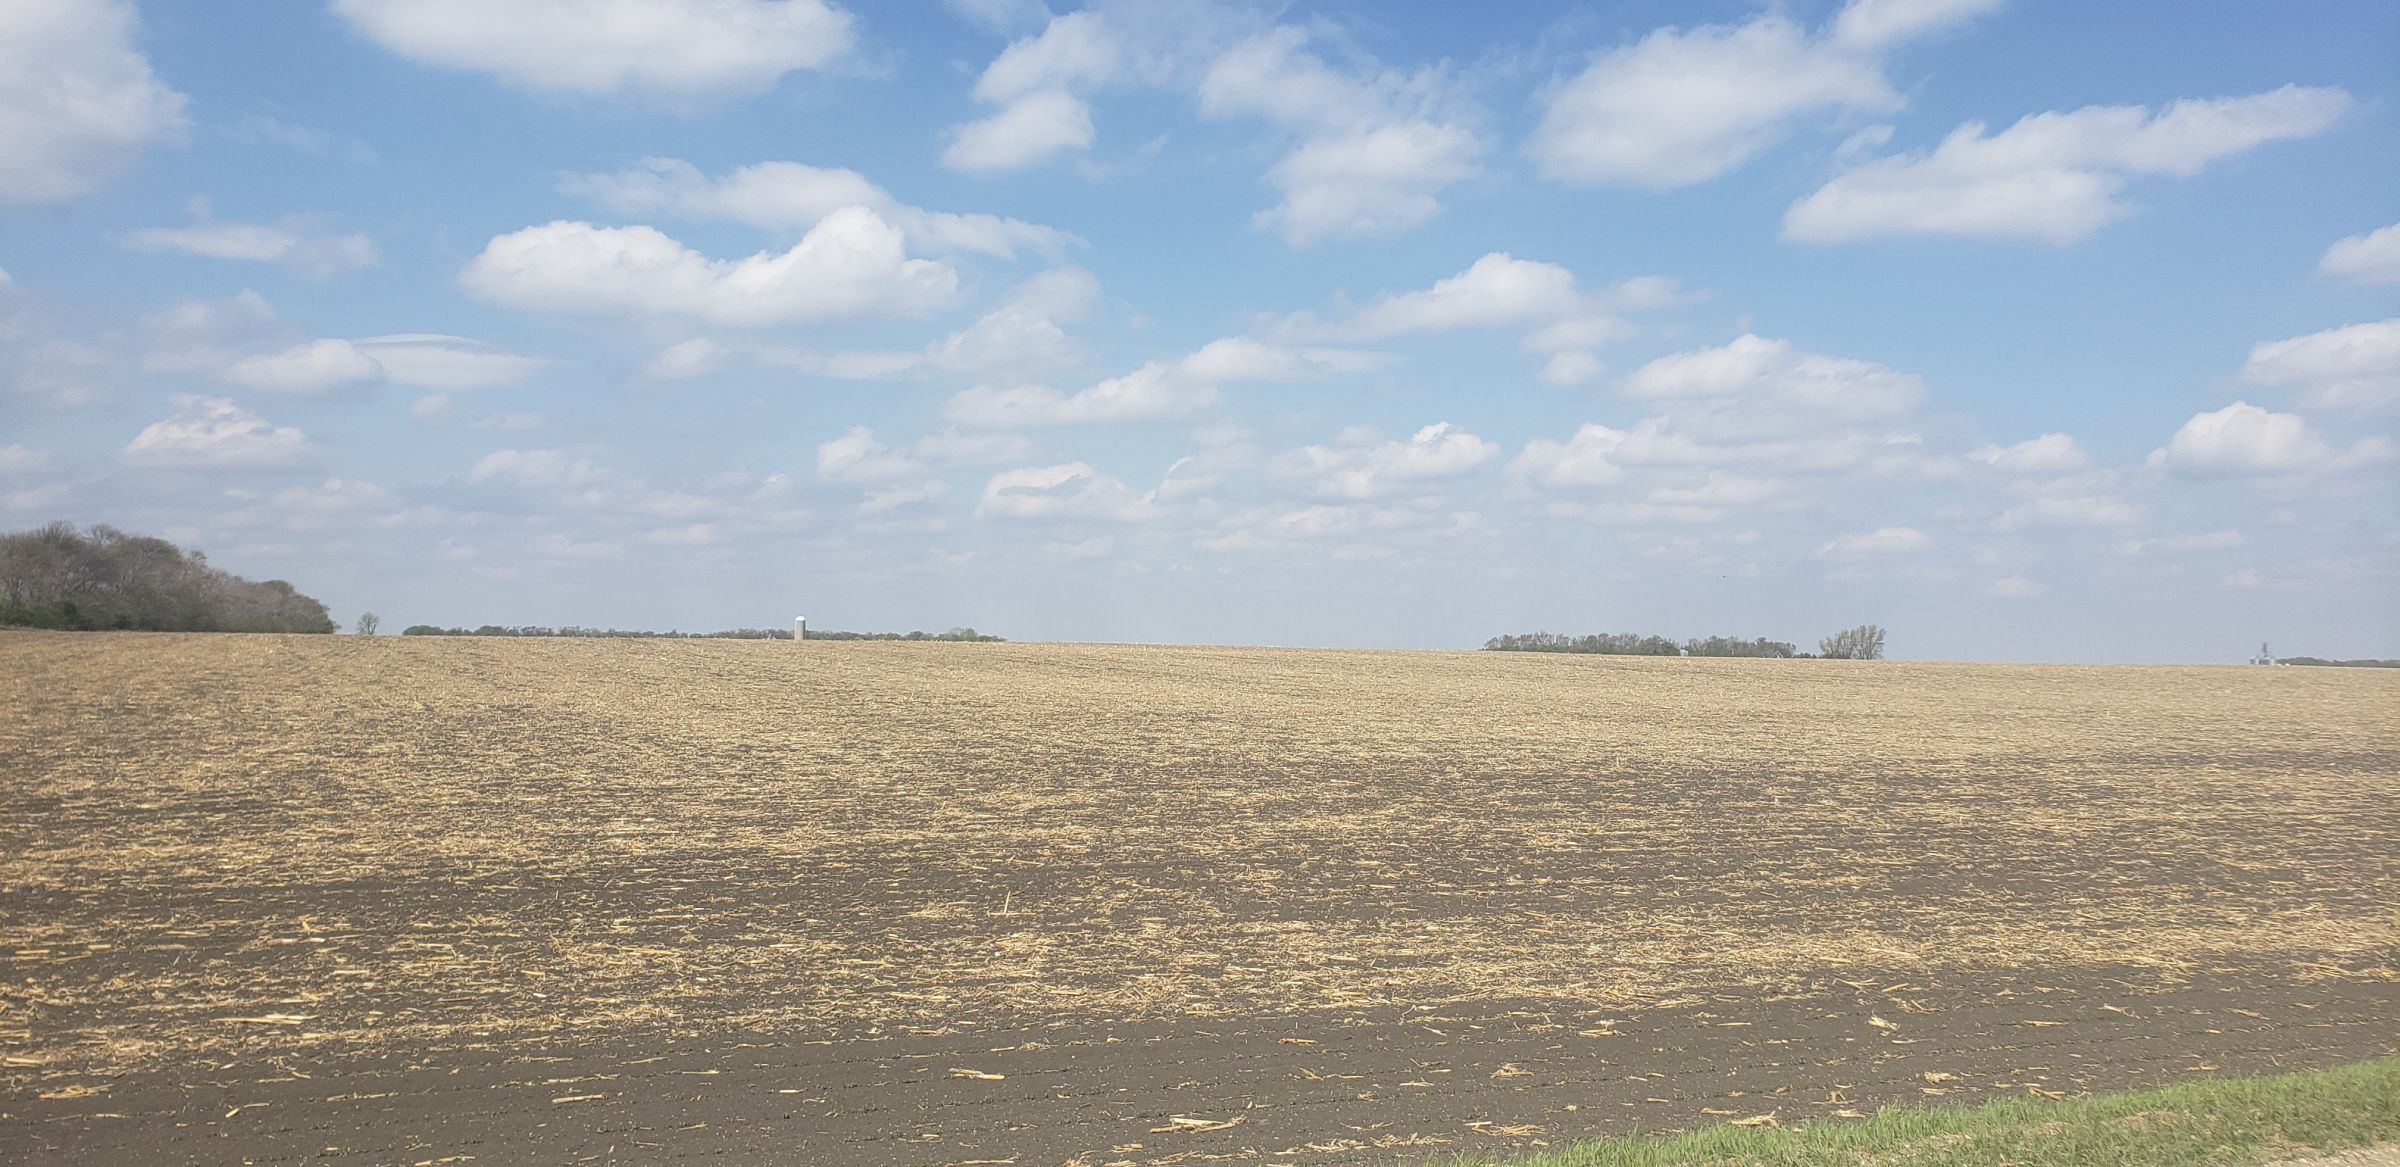 auctions-cass-county-north-dakota-157-acres-listing-number-15592-0-2021-06-16-180841.jpg